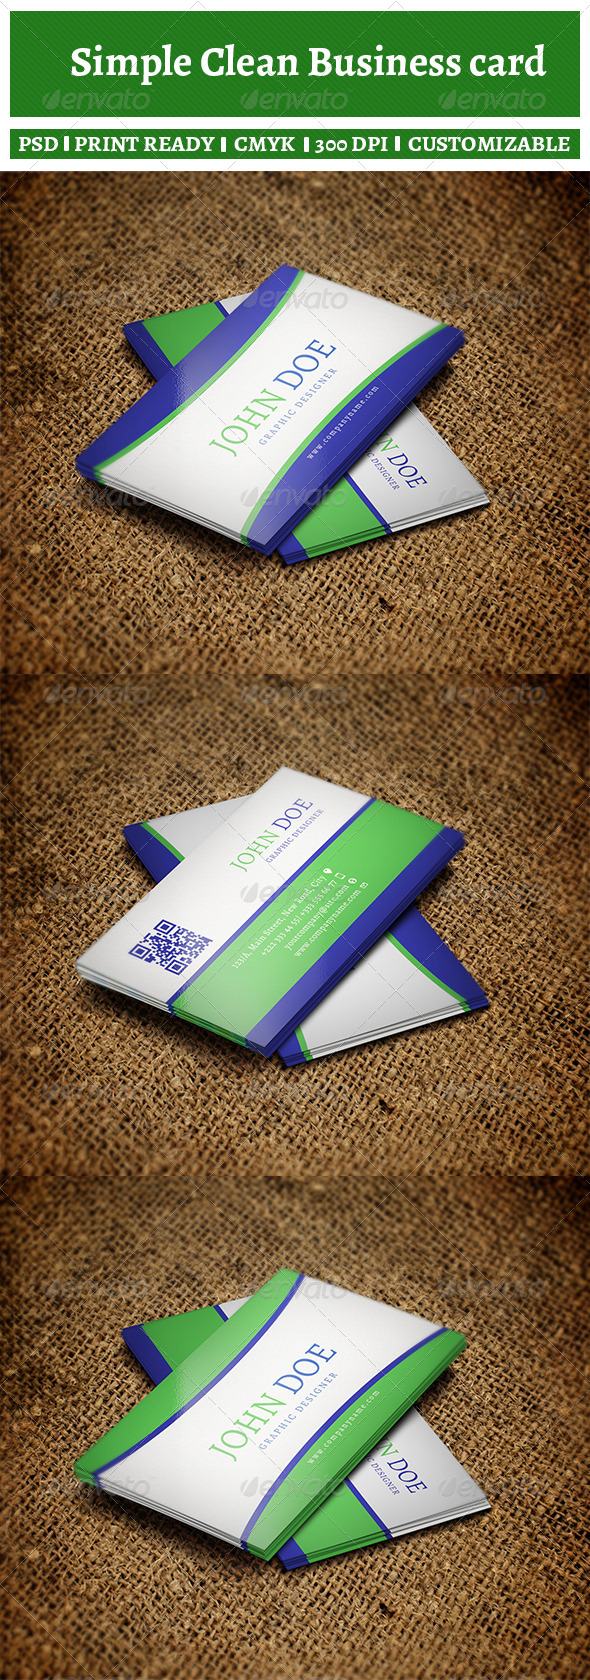 Simple Clean Business Card    - Corporate Business Cards